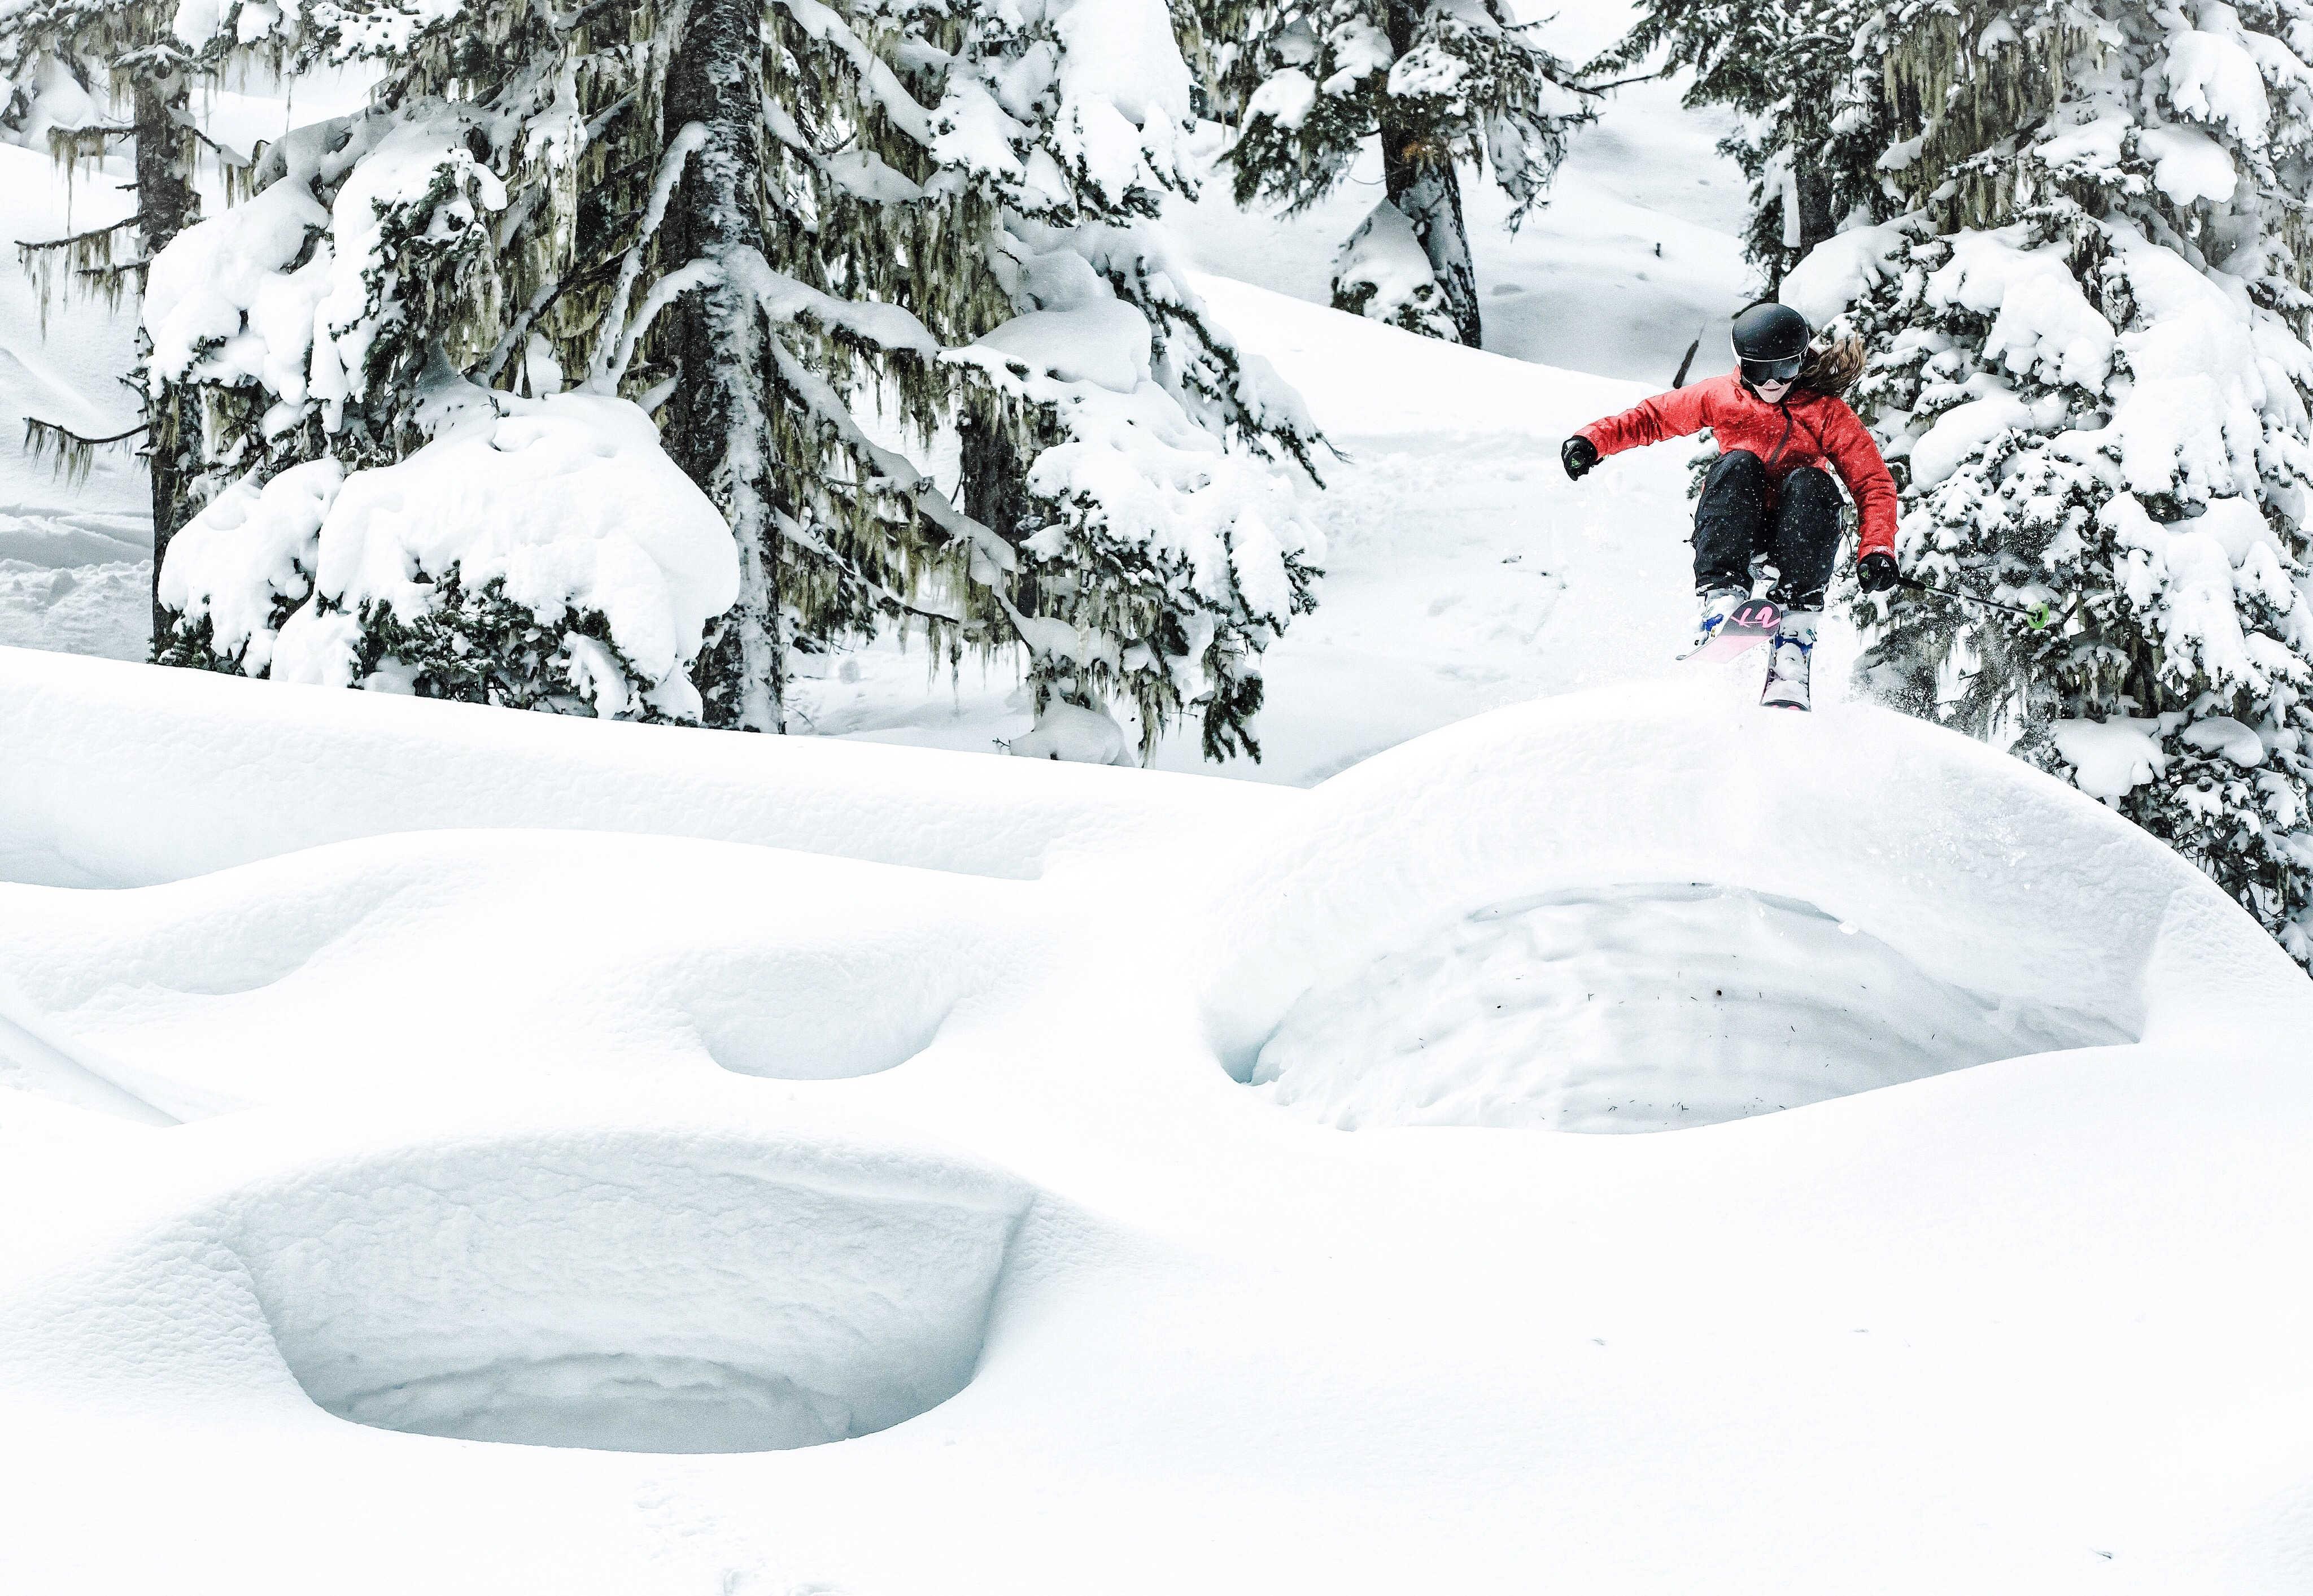 Shannon Mahre skiing on a powder day